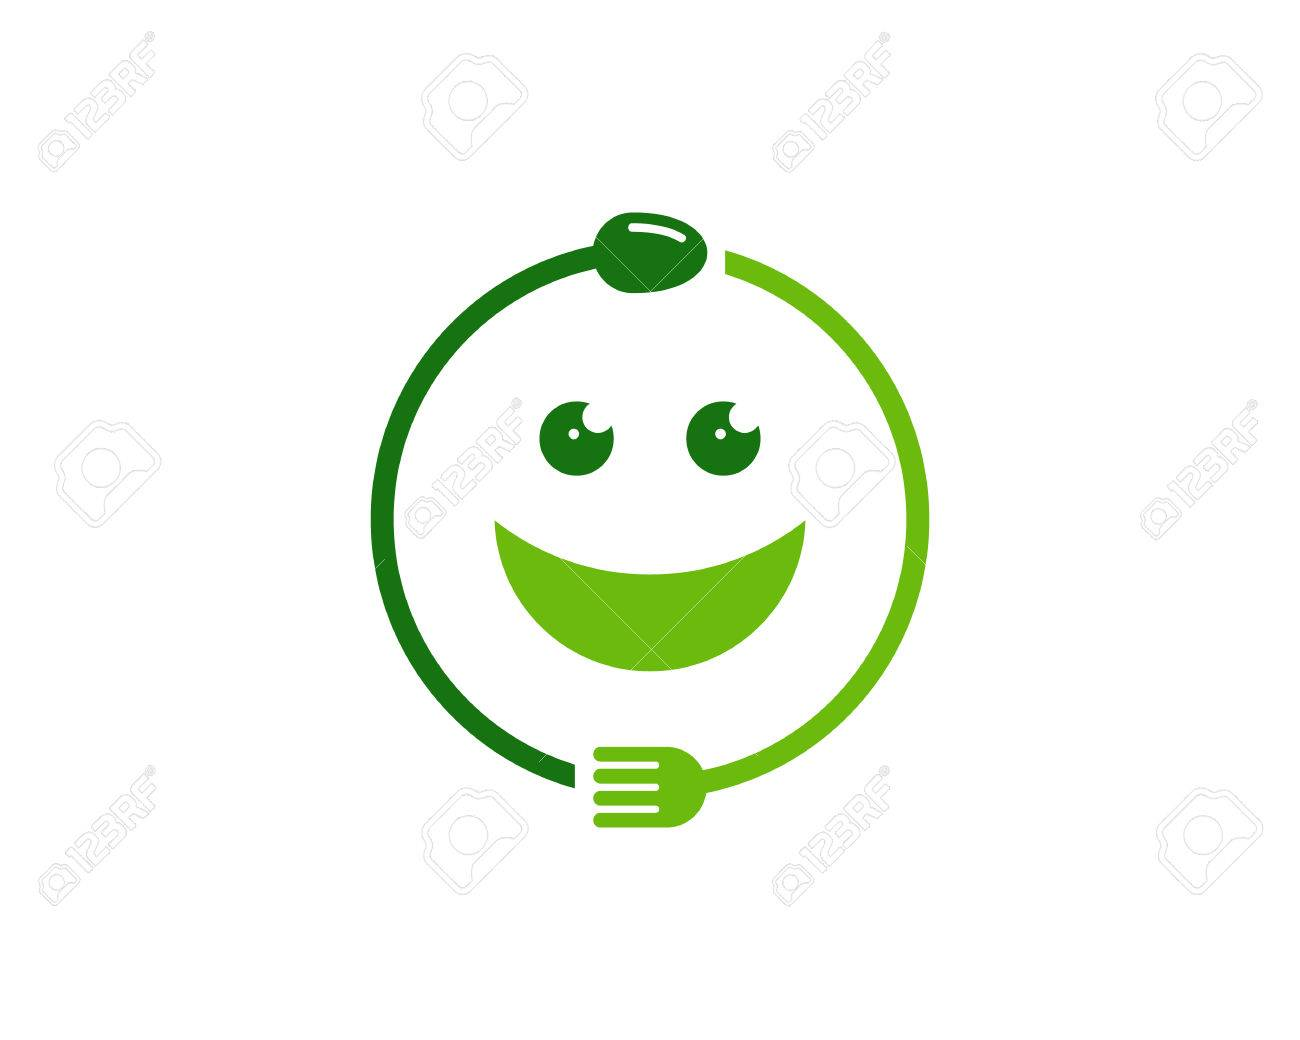 A concept illustration of fork and spoon wrap around into a smiley symbol.Food Icon Logo Design Element - 80612134